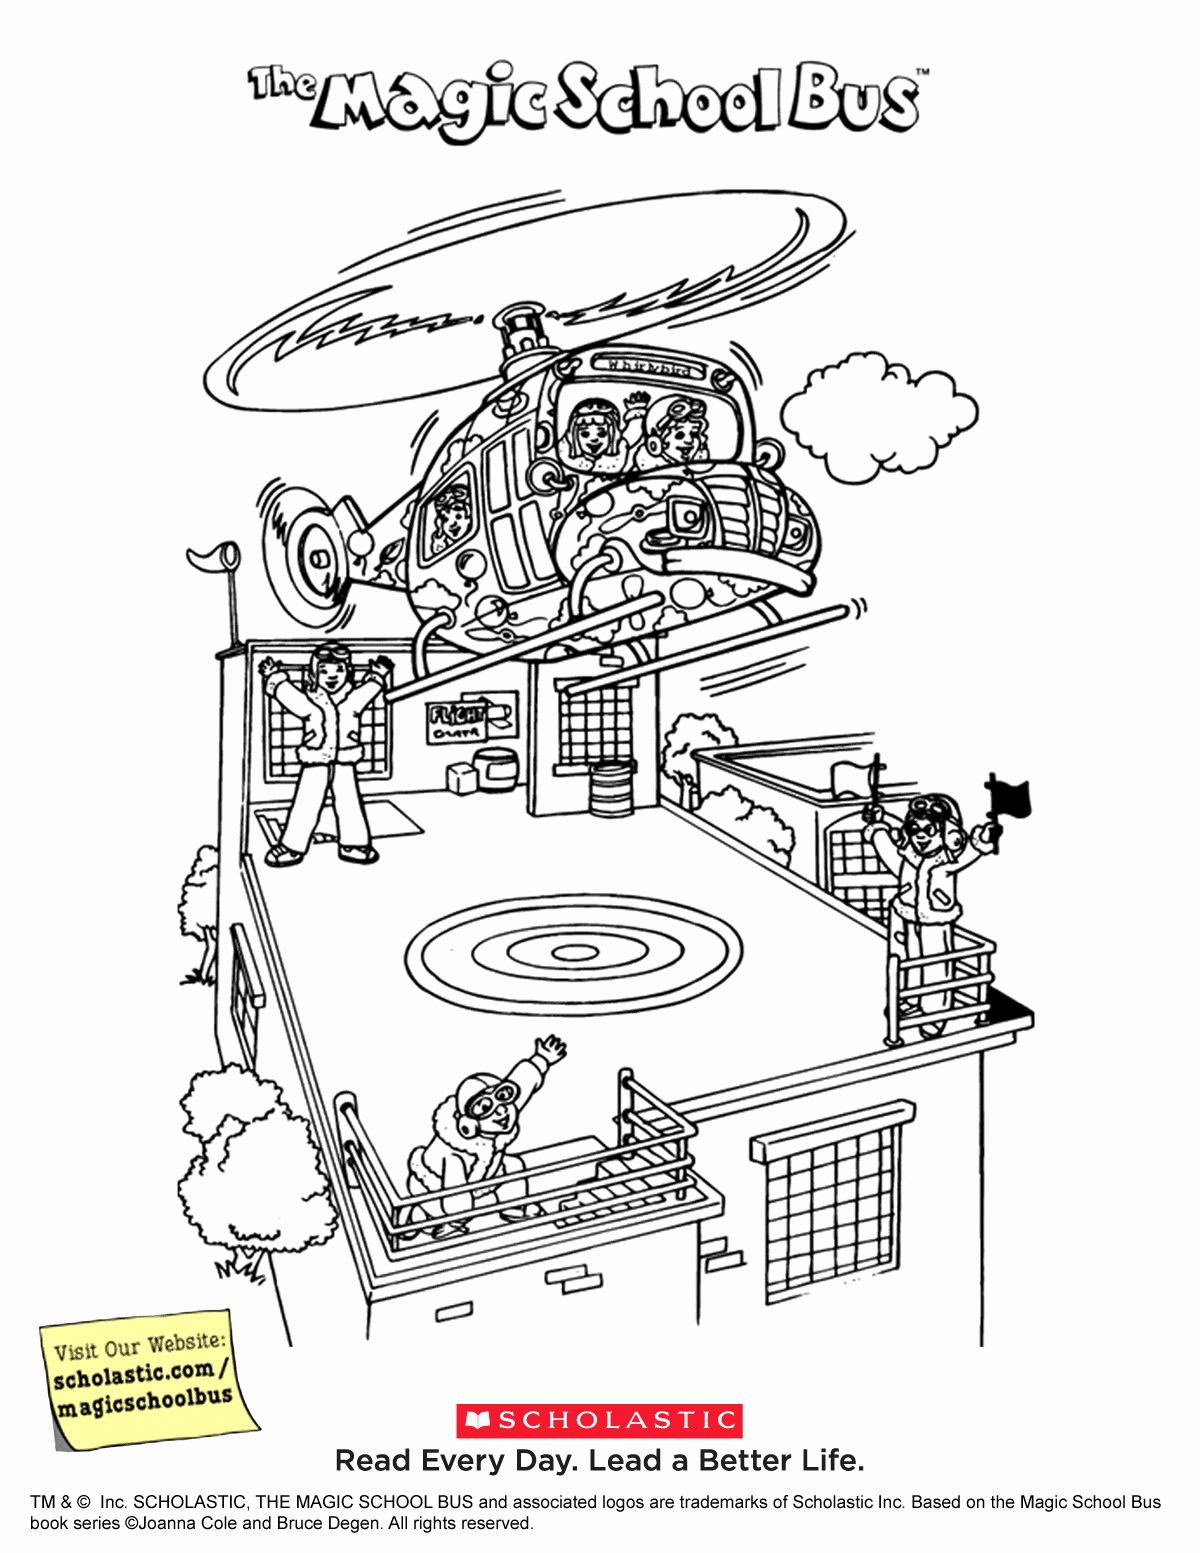 Magic School Bus Coloring Page Lovely Magic School Bus